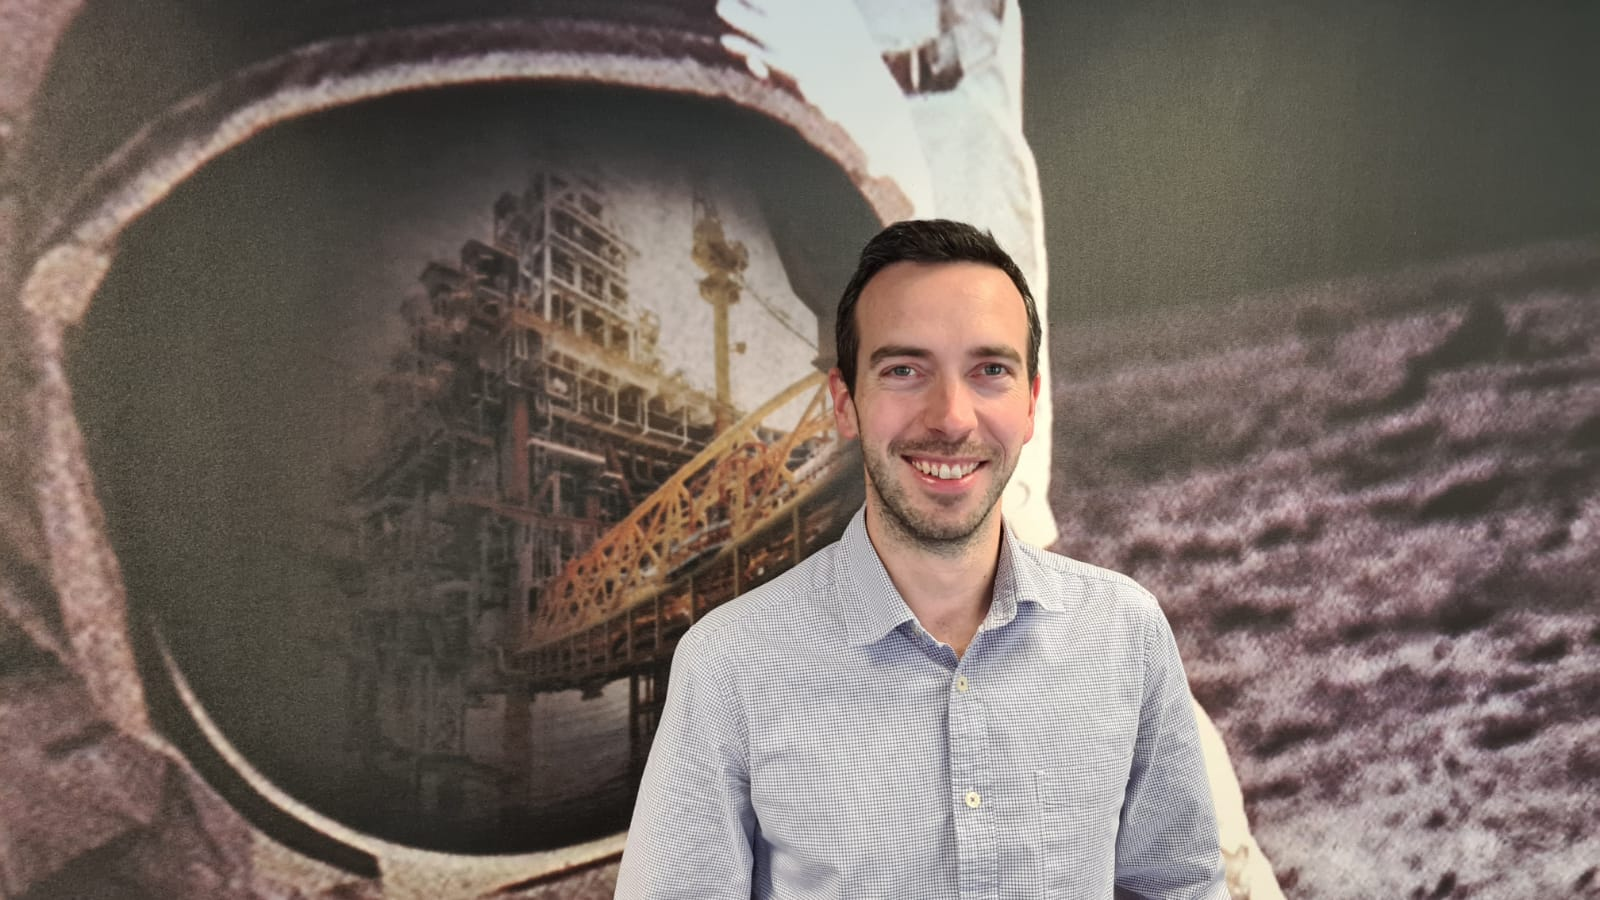 MEMBER NEWS: Apollo appoints new engineering manager